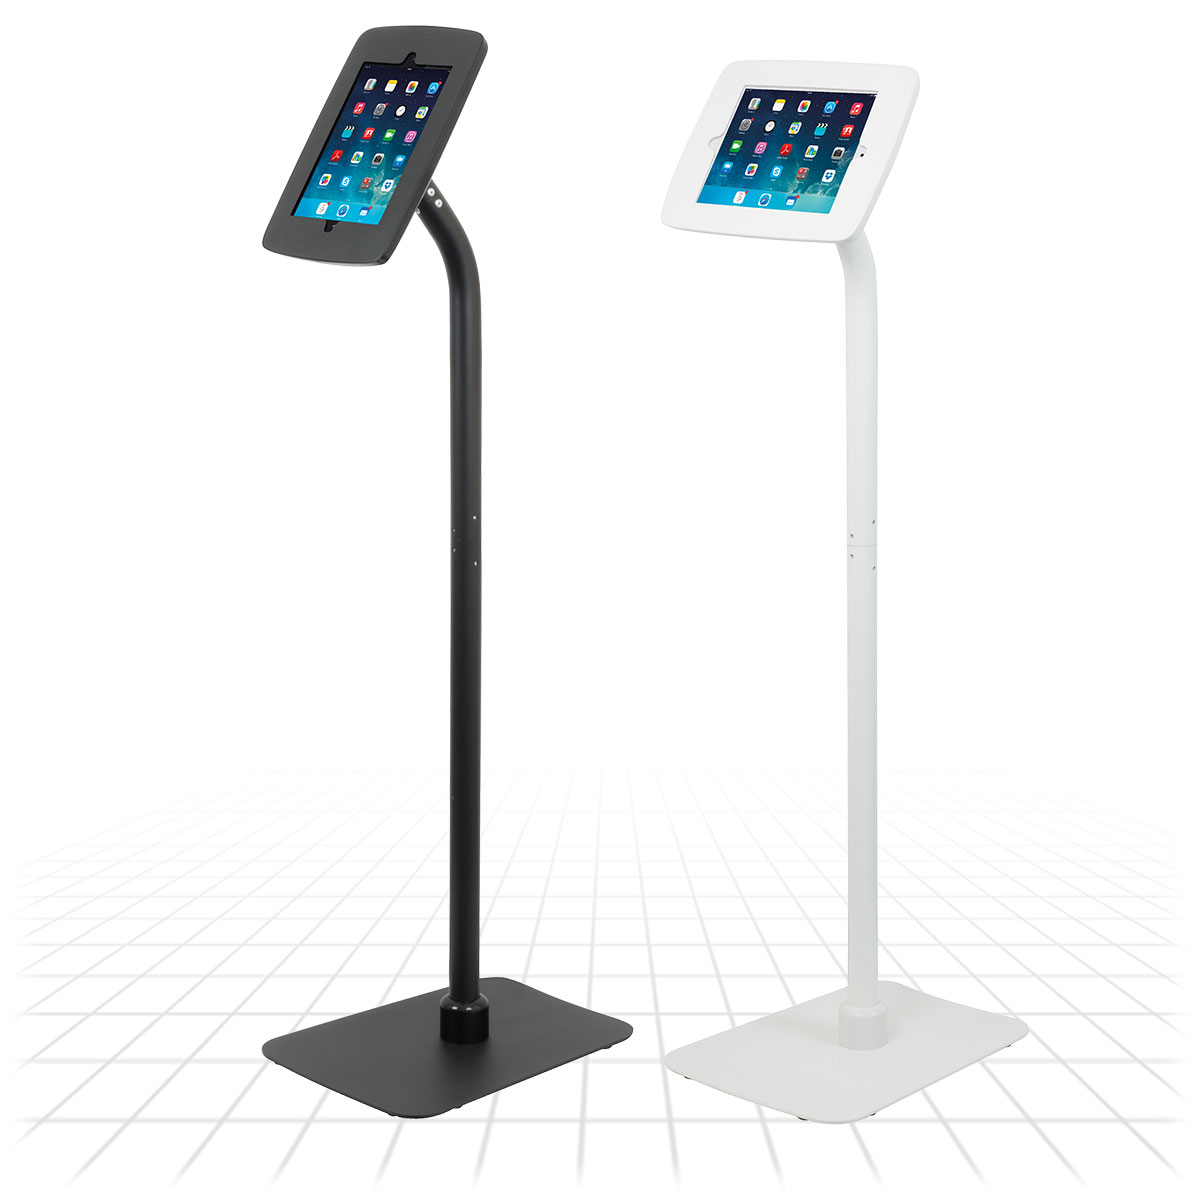 Zeus Exhibition Stand : Launchpad tablet stand display stands